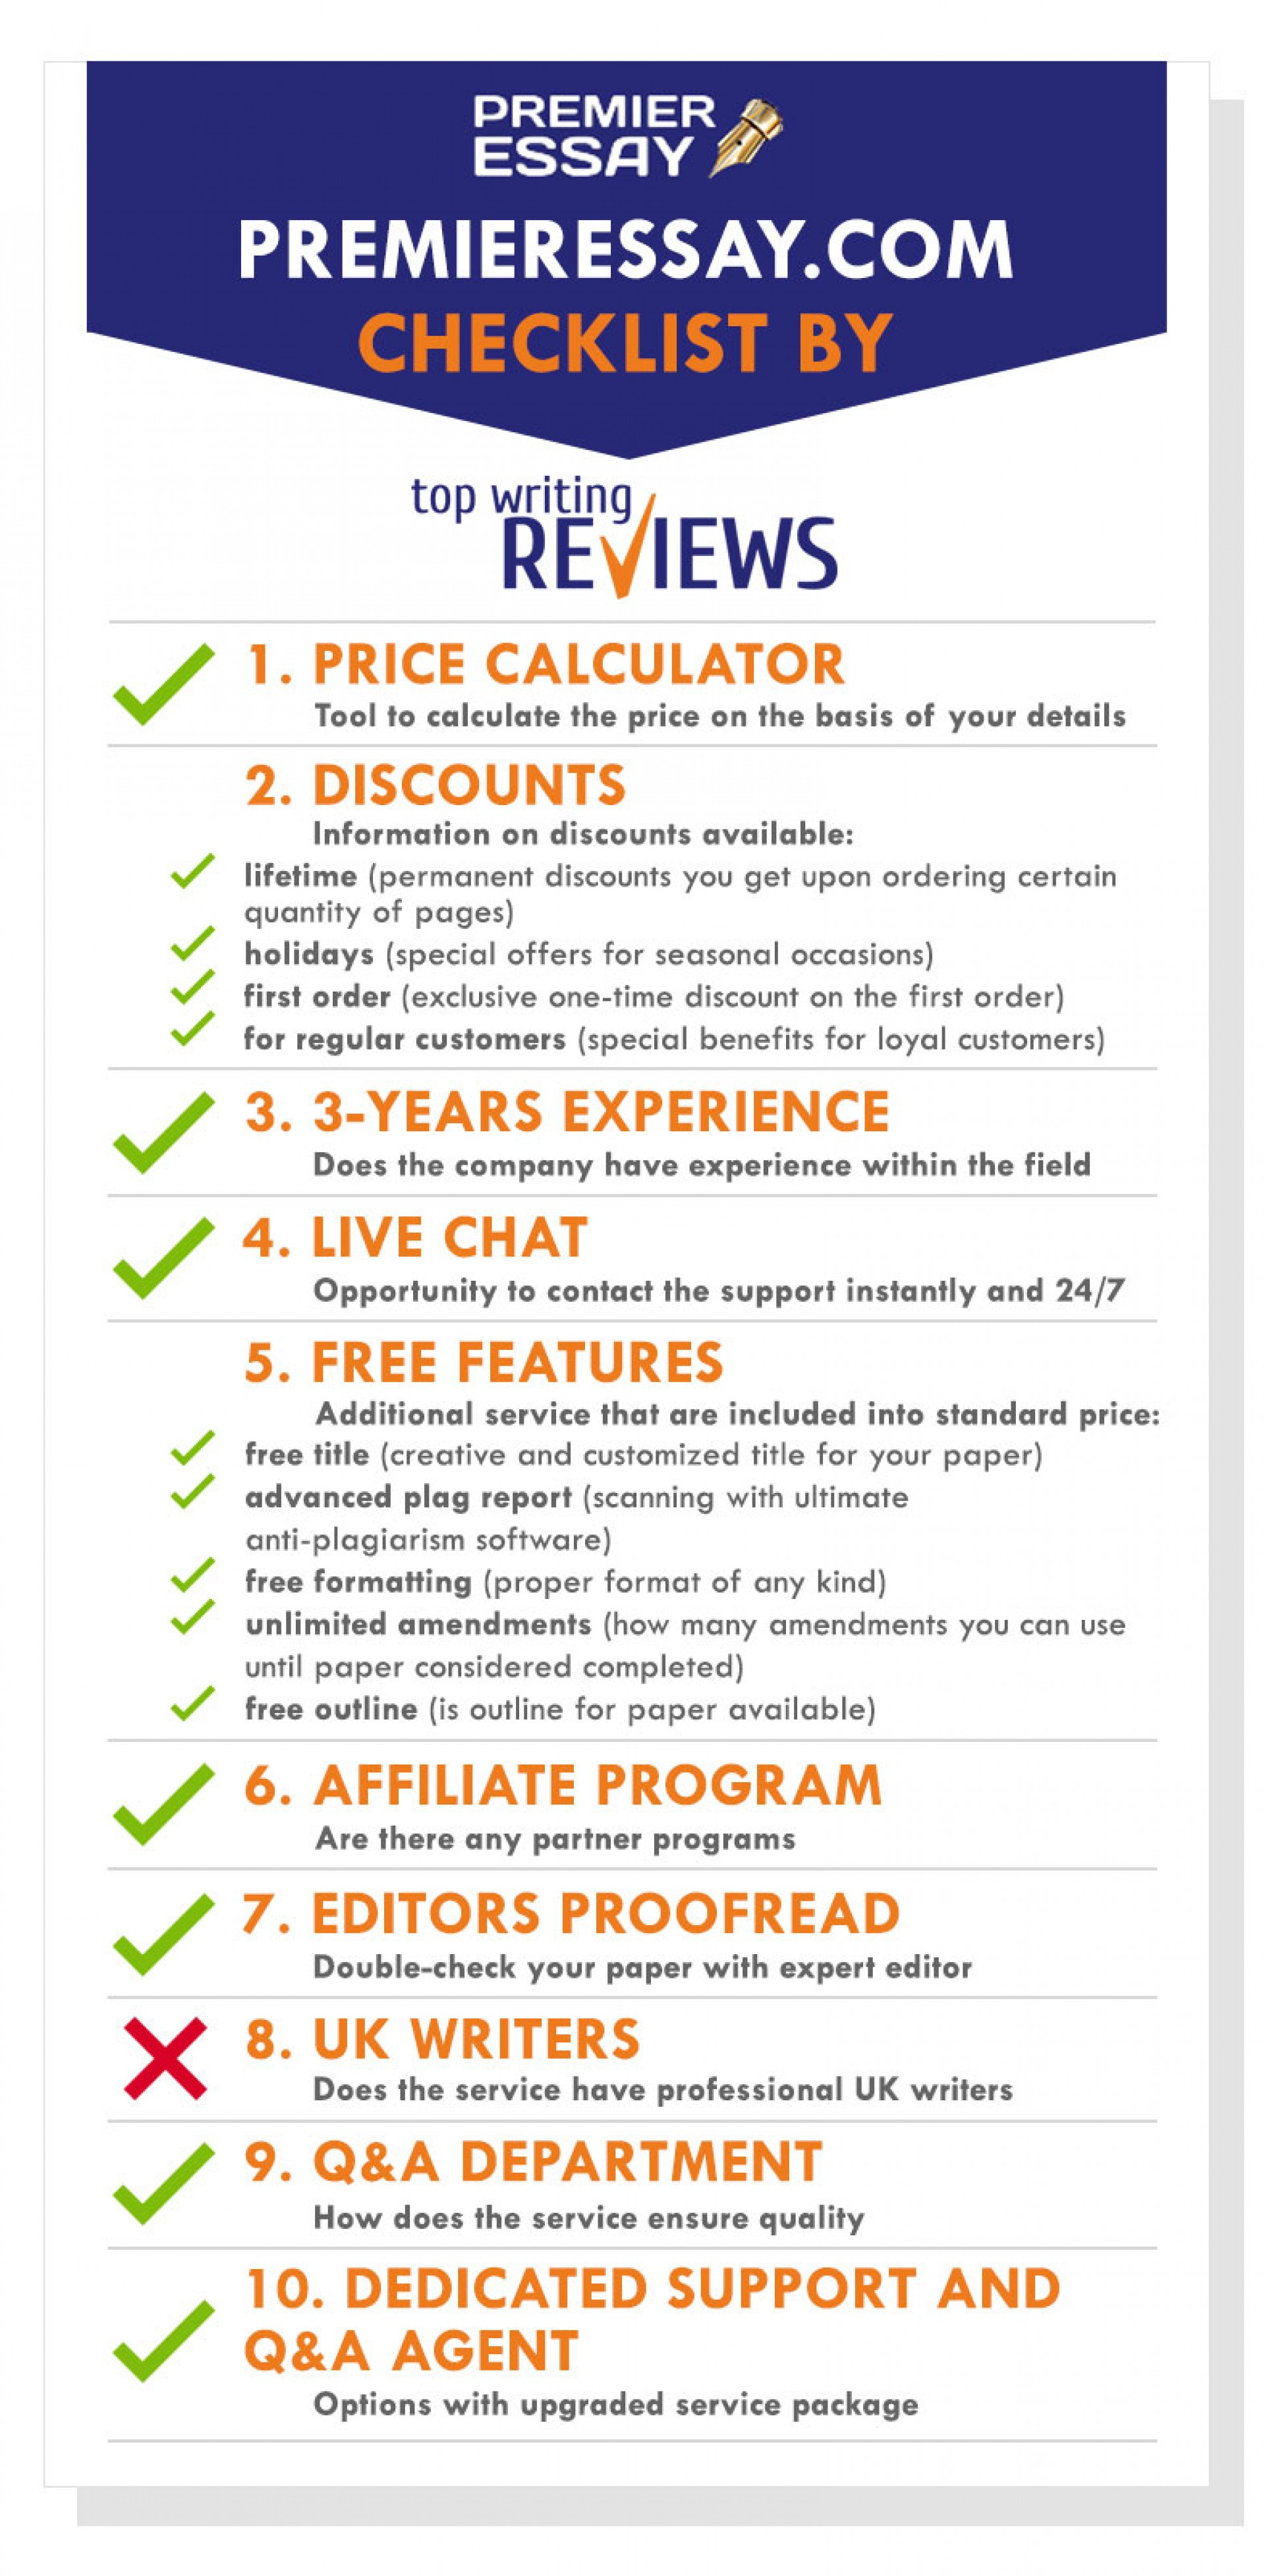 021 Essay Example Checklist Review Of Premieressay By Topwritingreviews Best Impressive Help Writing Services Uk Reviews Service 1920